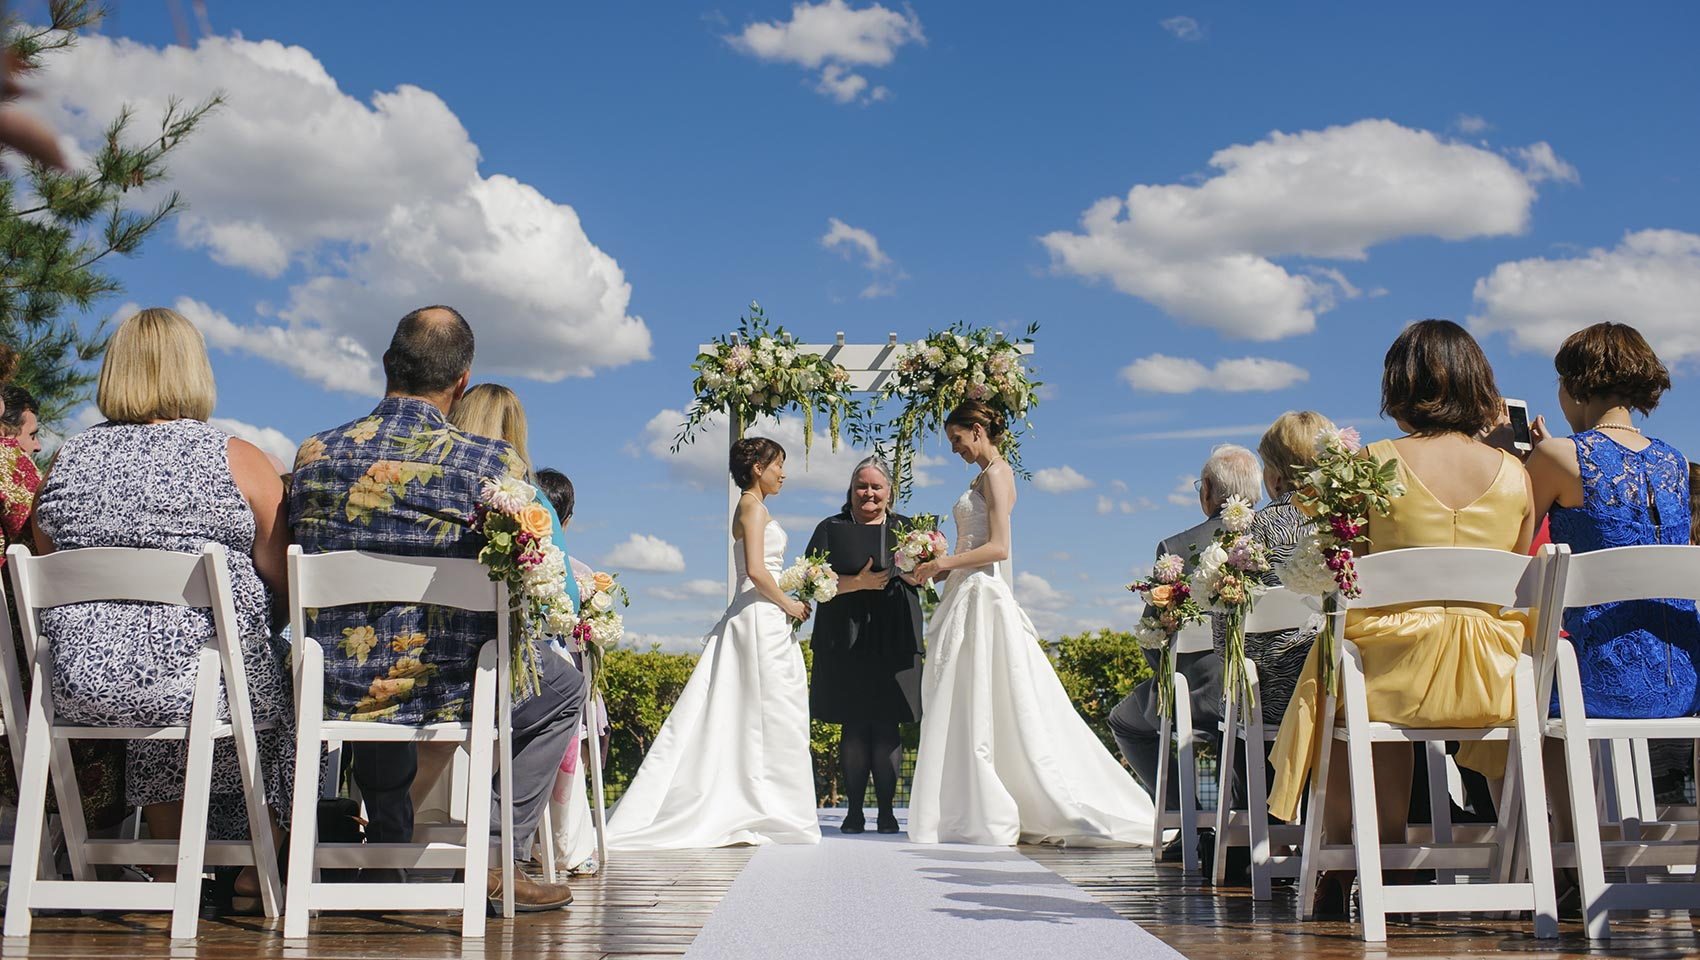 LGBT wedding ceremony at outdoor Portland wedding venue